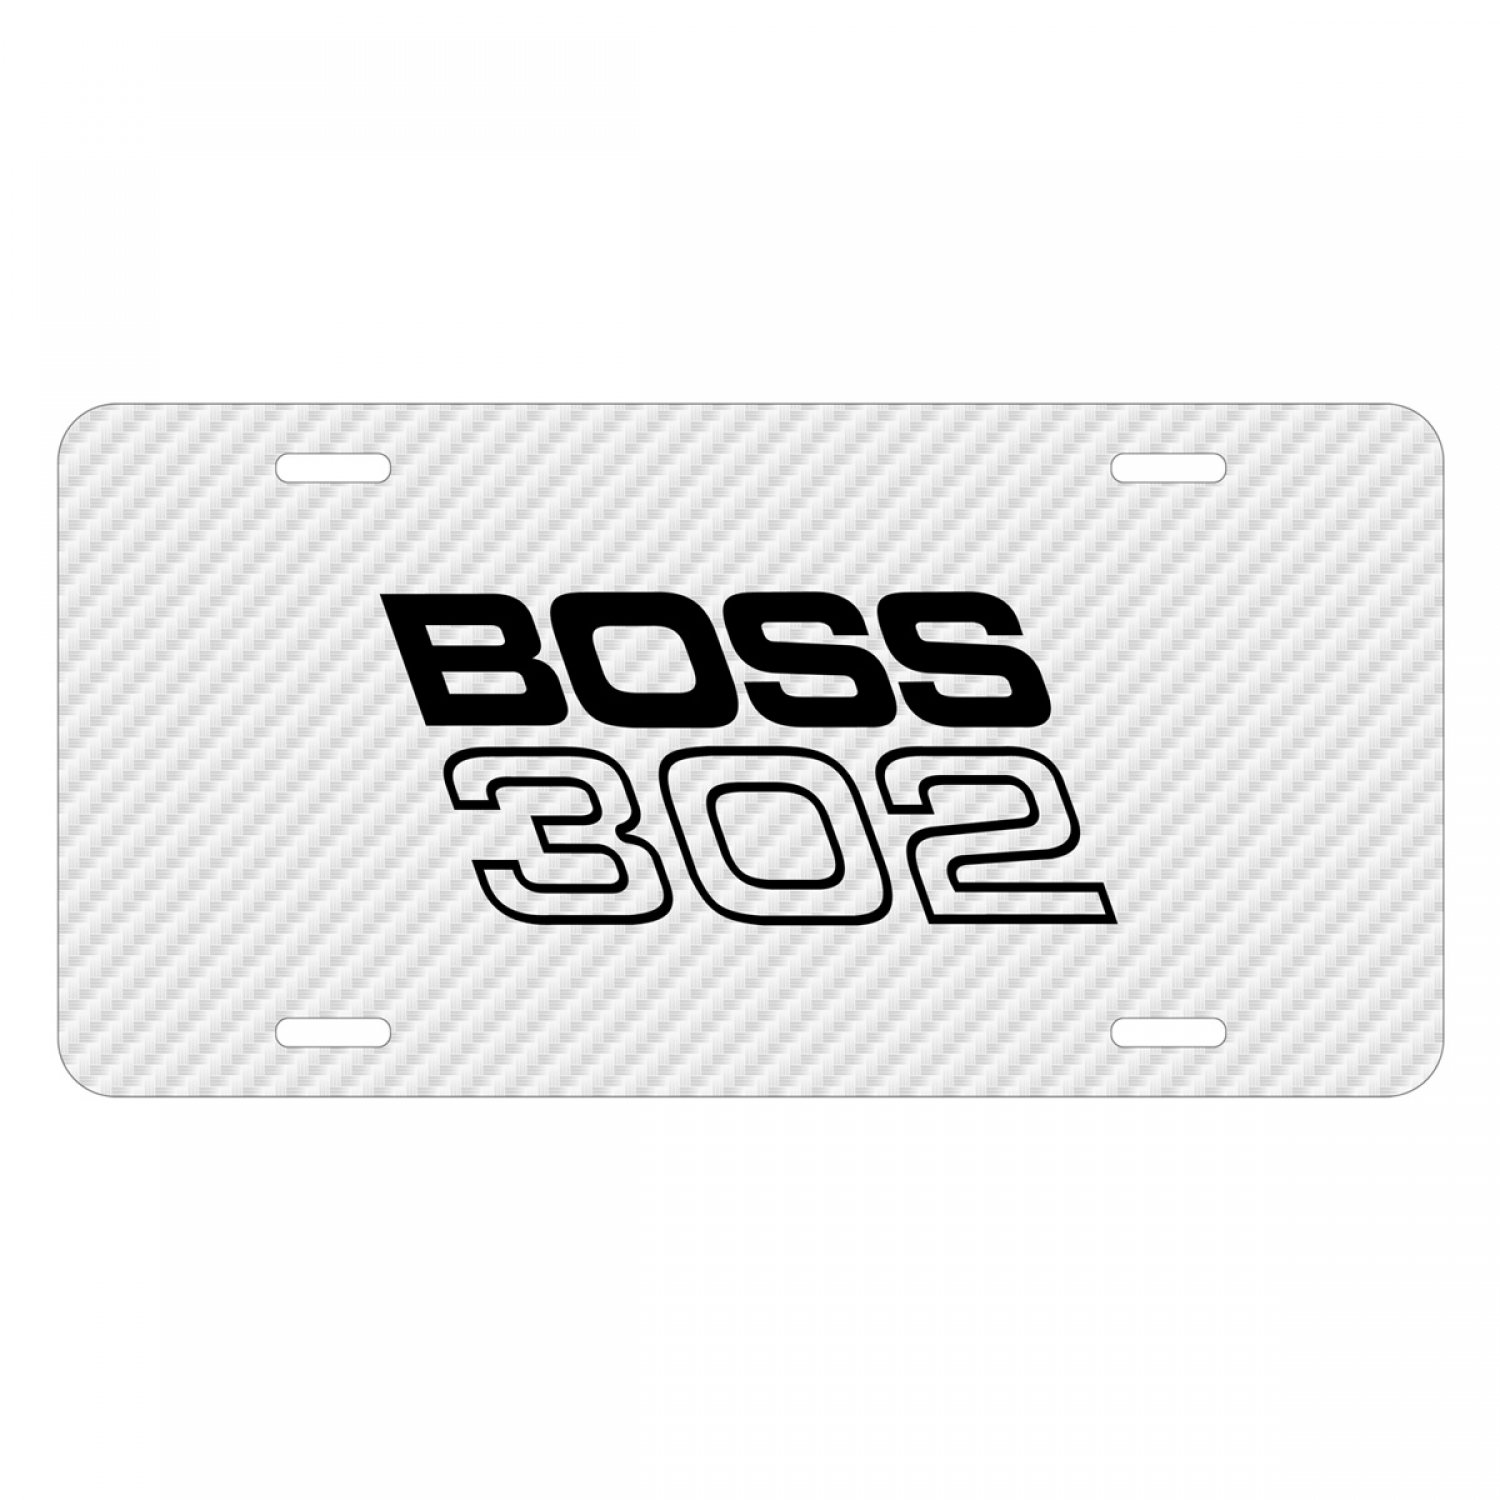 Ford Mustang Boss 302 White Carbon Fiber Texture Graphic UV Metal License Plate